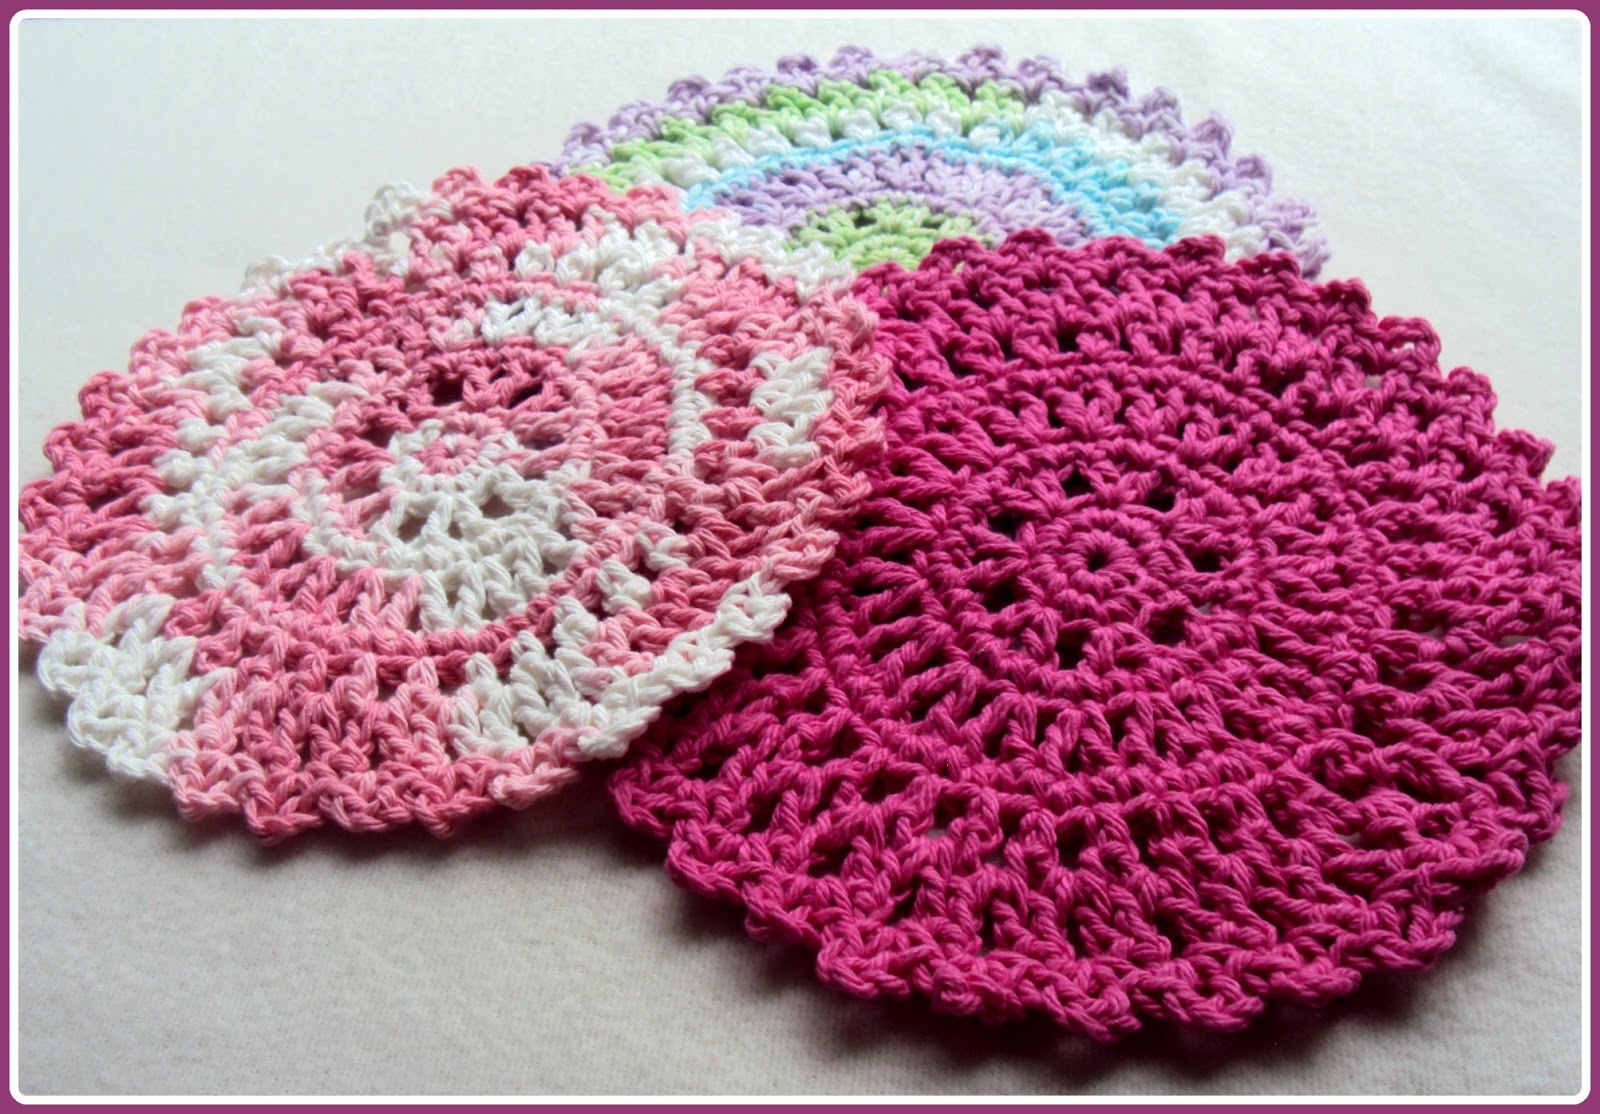 Crochet Patterns Using Cotton Thread : ... up quickly and beautifully when using both acrylic or cotton yarns